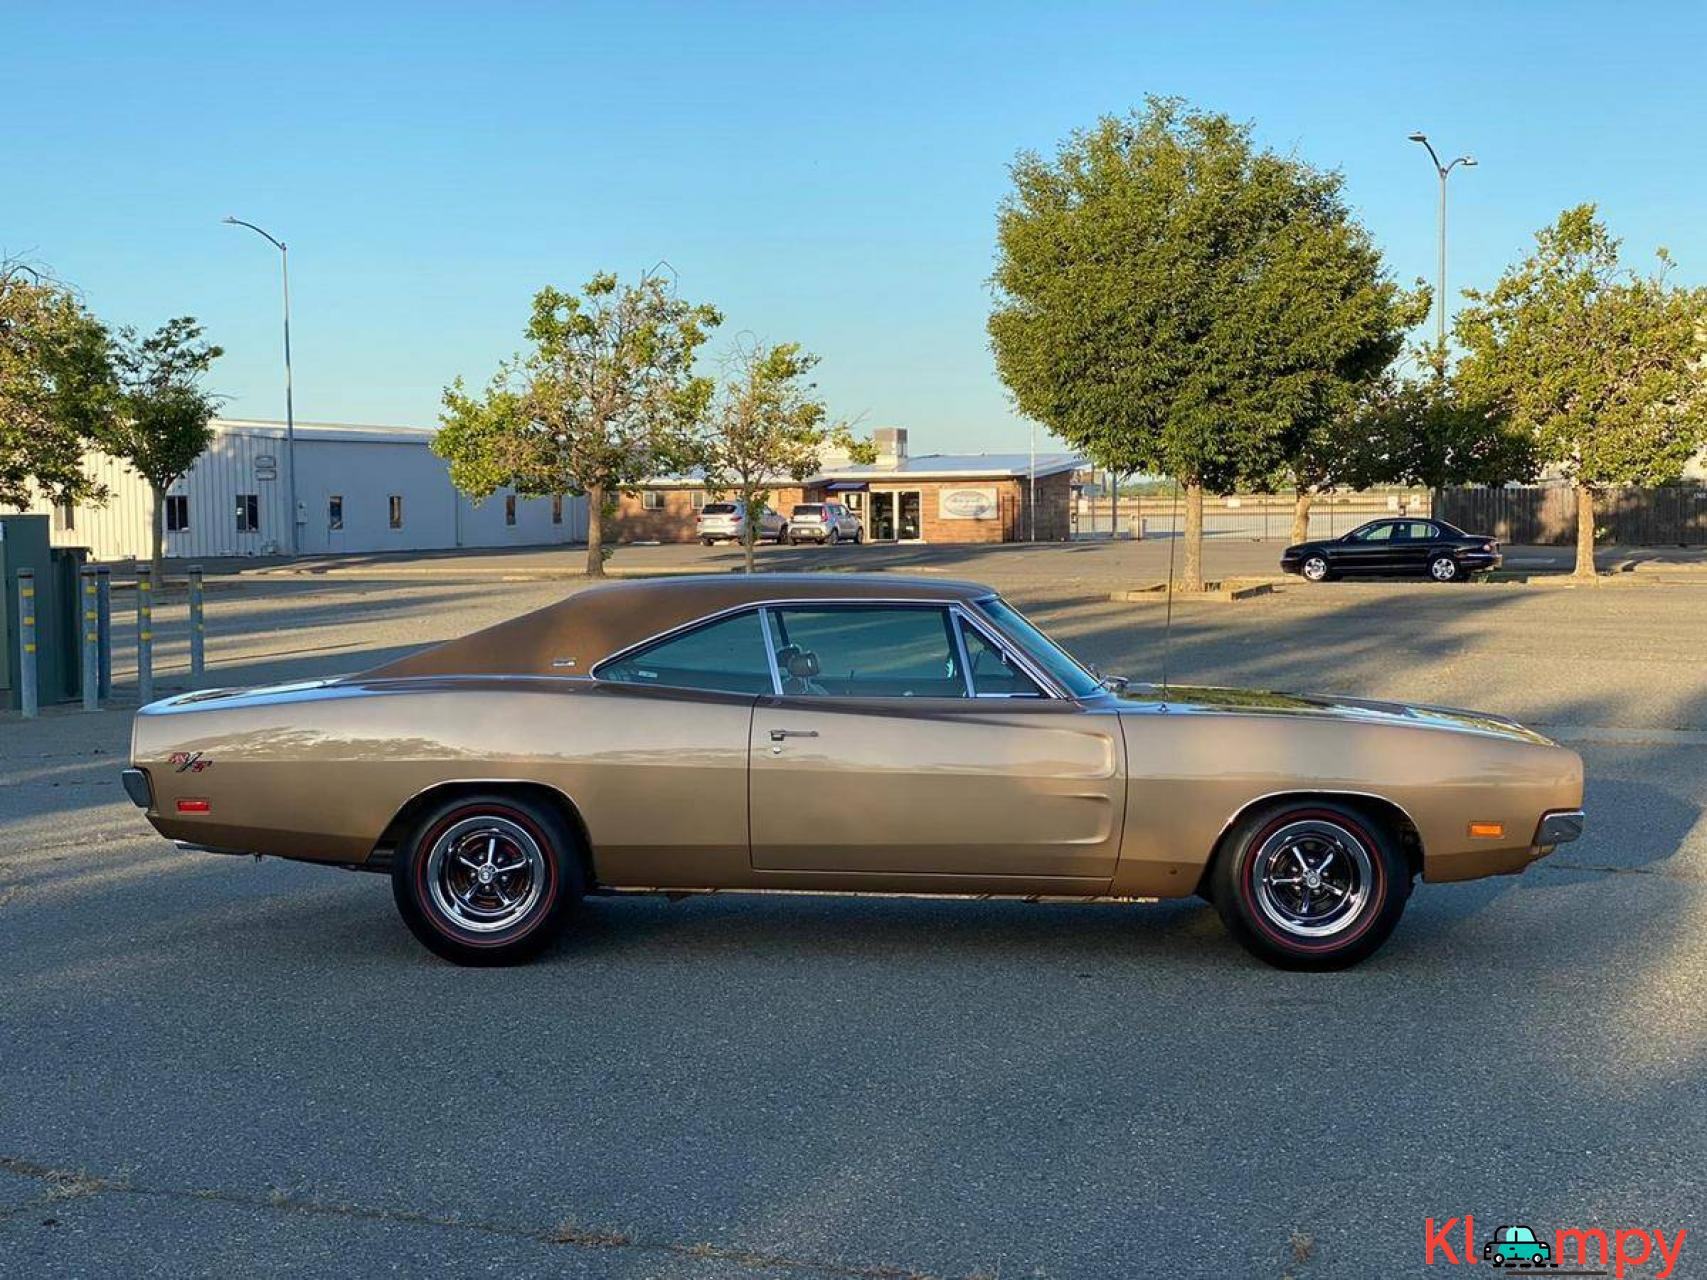 1969 Dodge Charger RT SE 440 375hp High Performance - 19/20